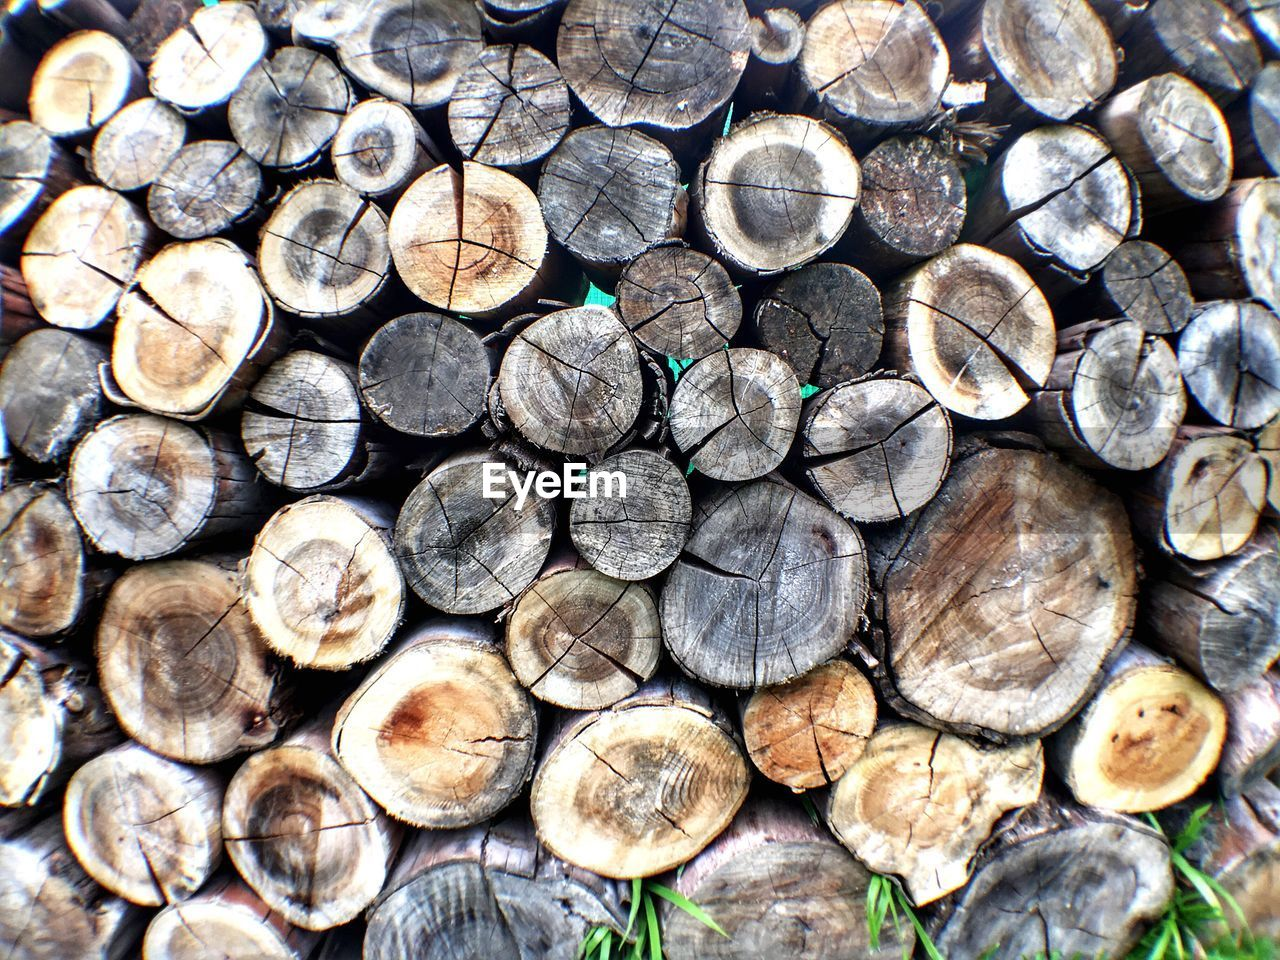 log, timber, woodpile, stack, forestry industry, backgrounds, full frame, wood - material, abundance, large group of objects, close-up, heap, no people, textured, day, outdoors